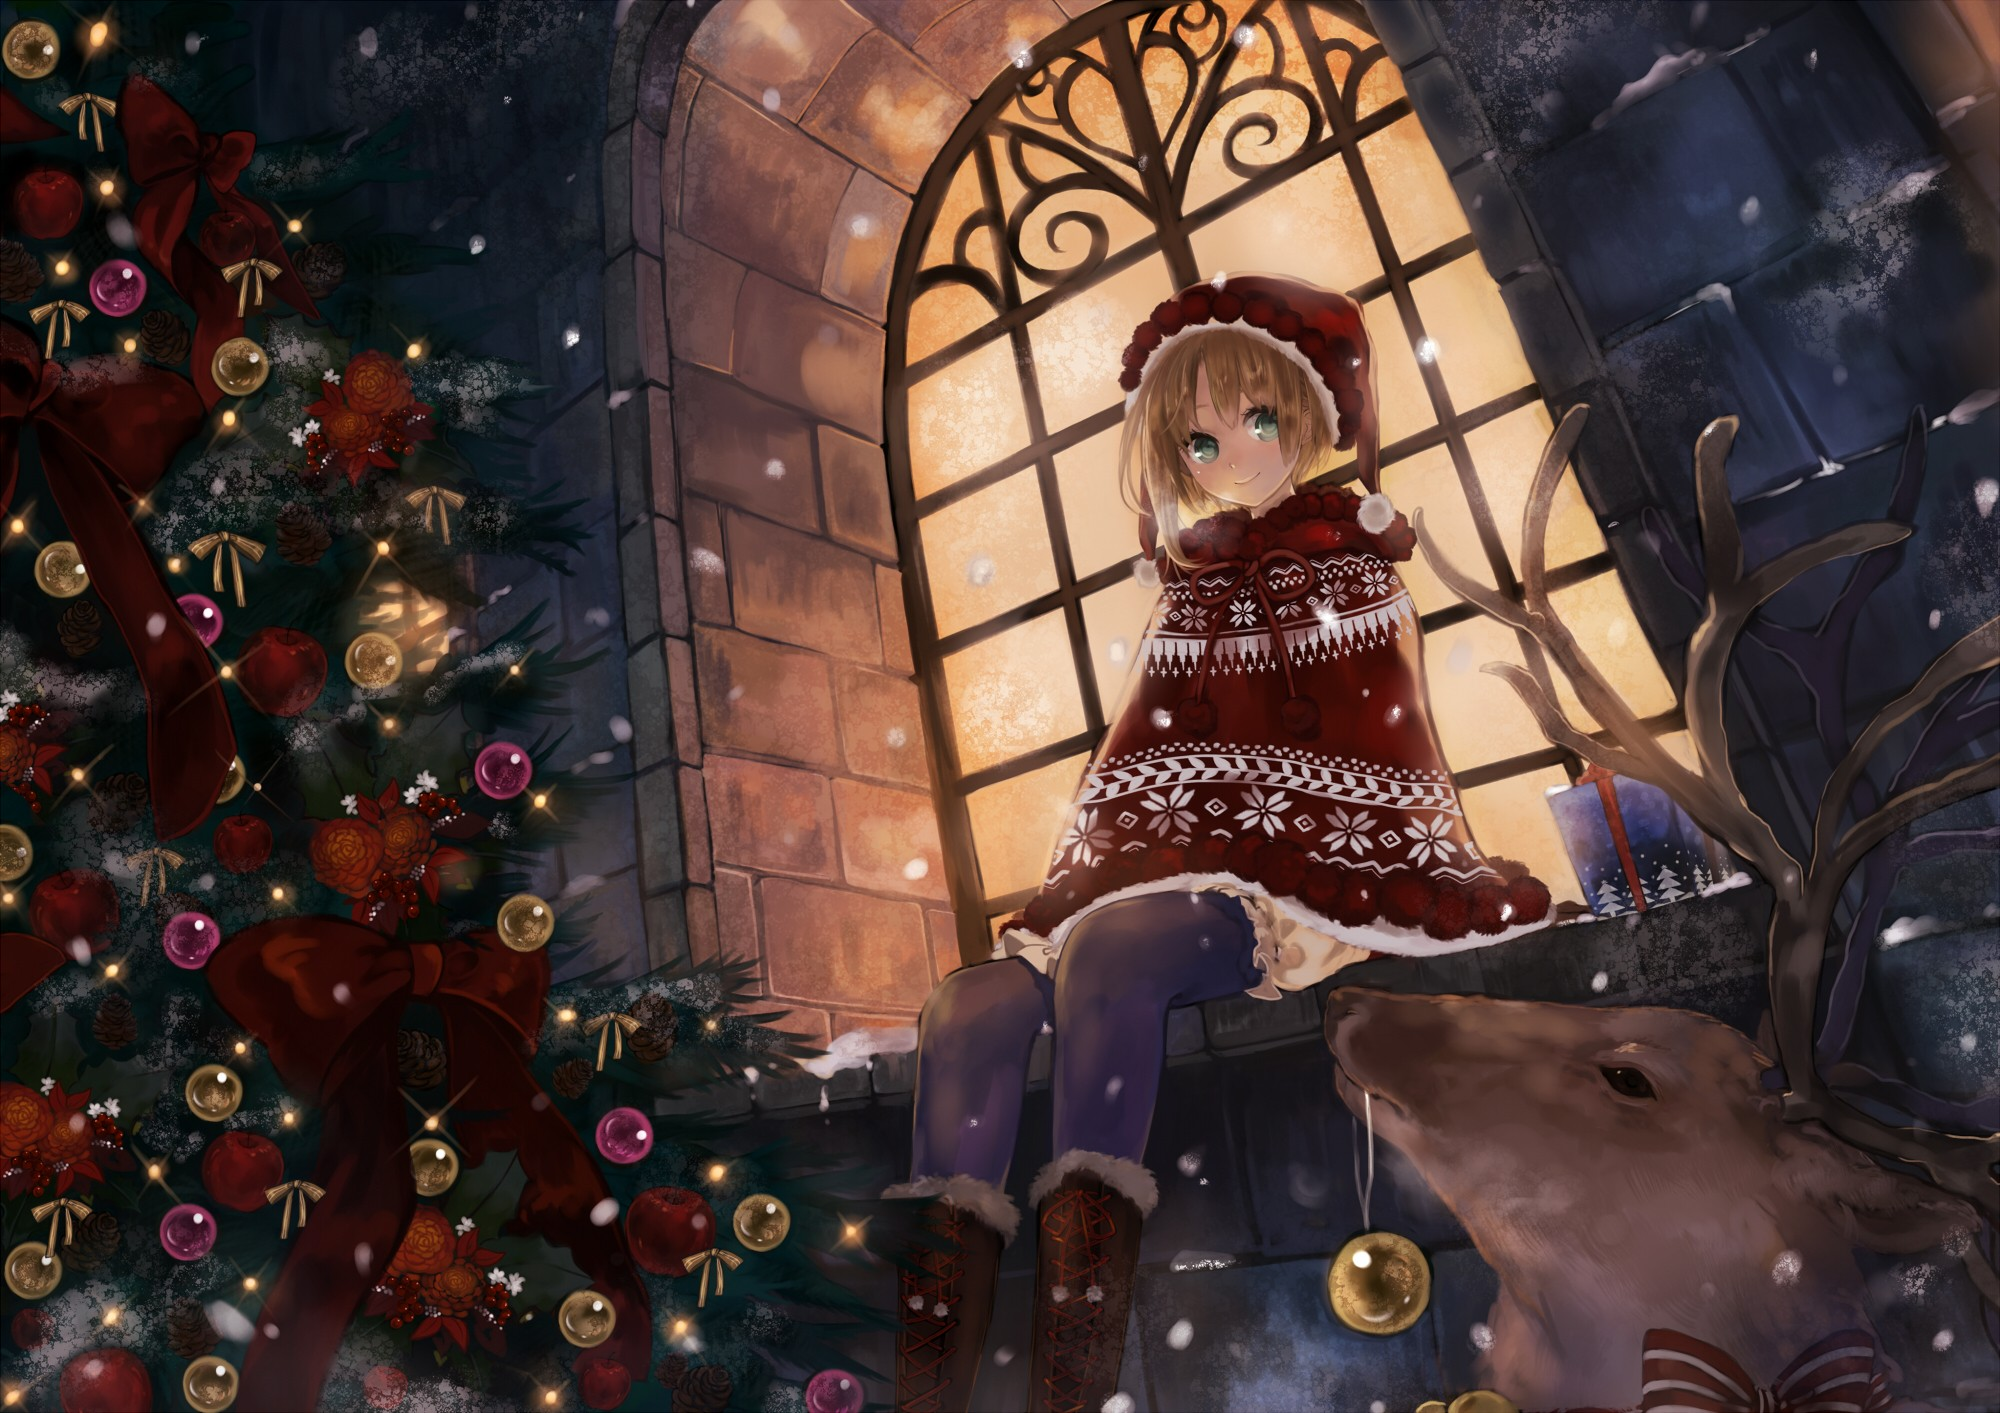 Anime christmas wallpaper download free awesome hd - Anime merry christmas wallpaper ...